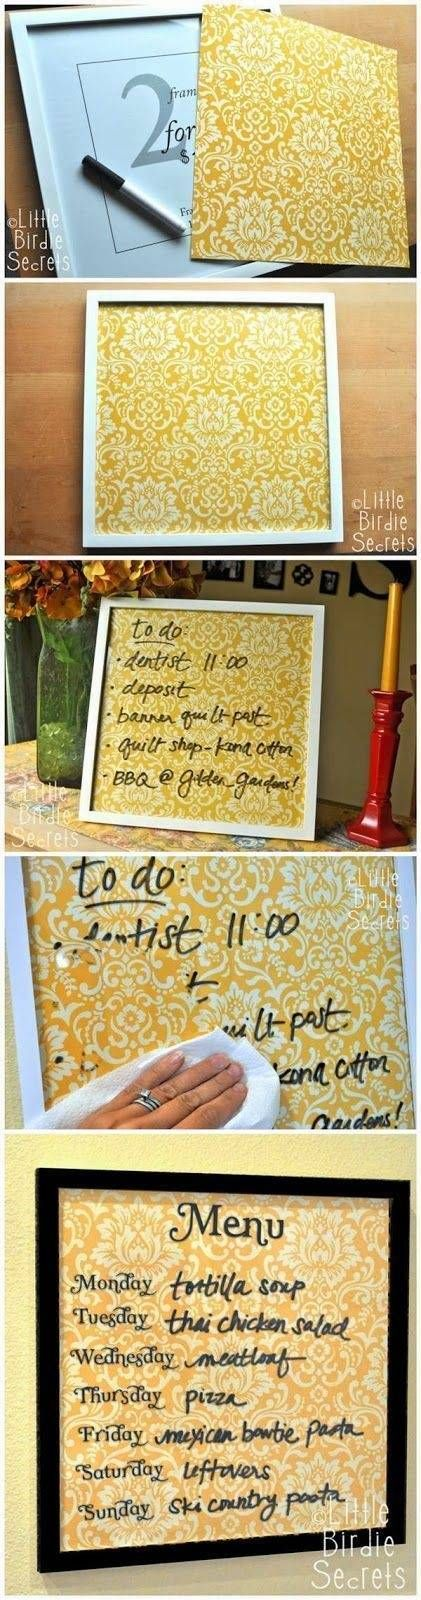 16 DIY Projects That Are Perfect for Every Weekend Warrior Out There - Dose - Your Daily Dose of Amazing